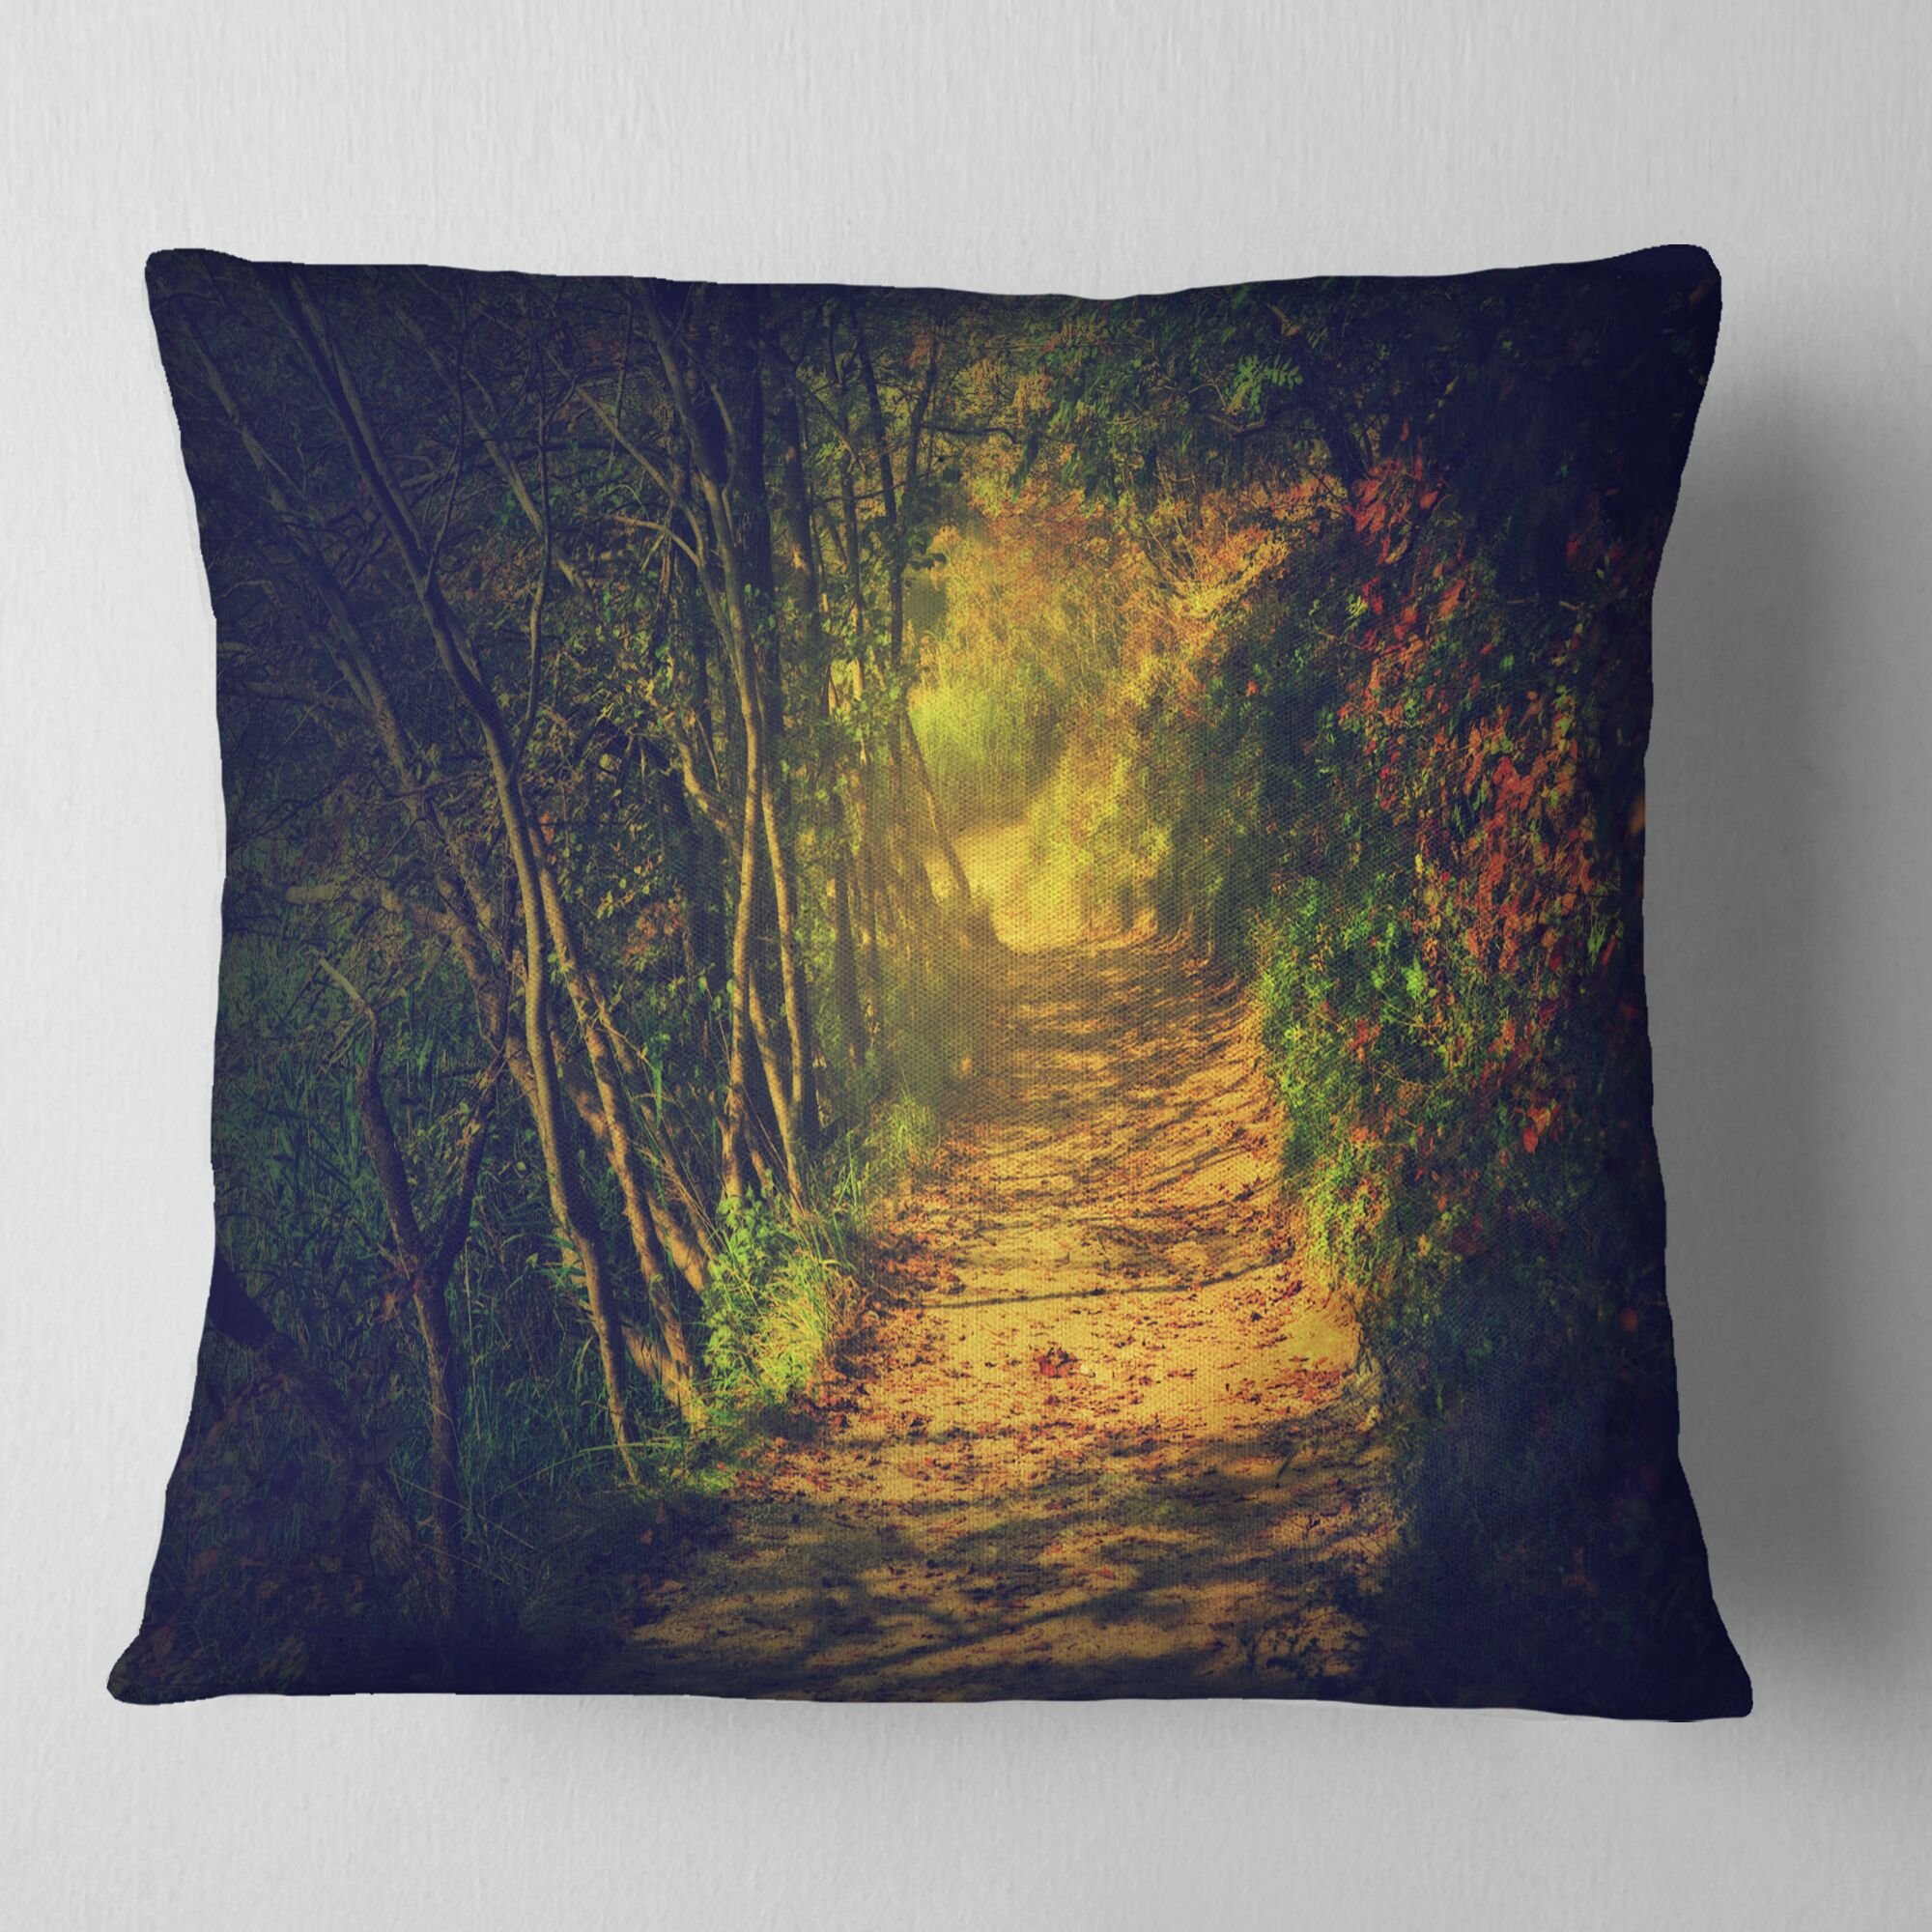 Autumn Forest Path in Sunshine Landscape Photography Pillow Size: 16